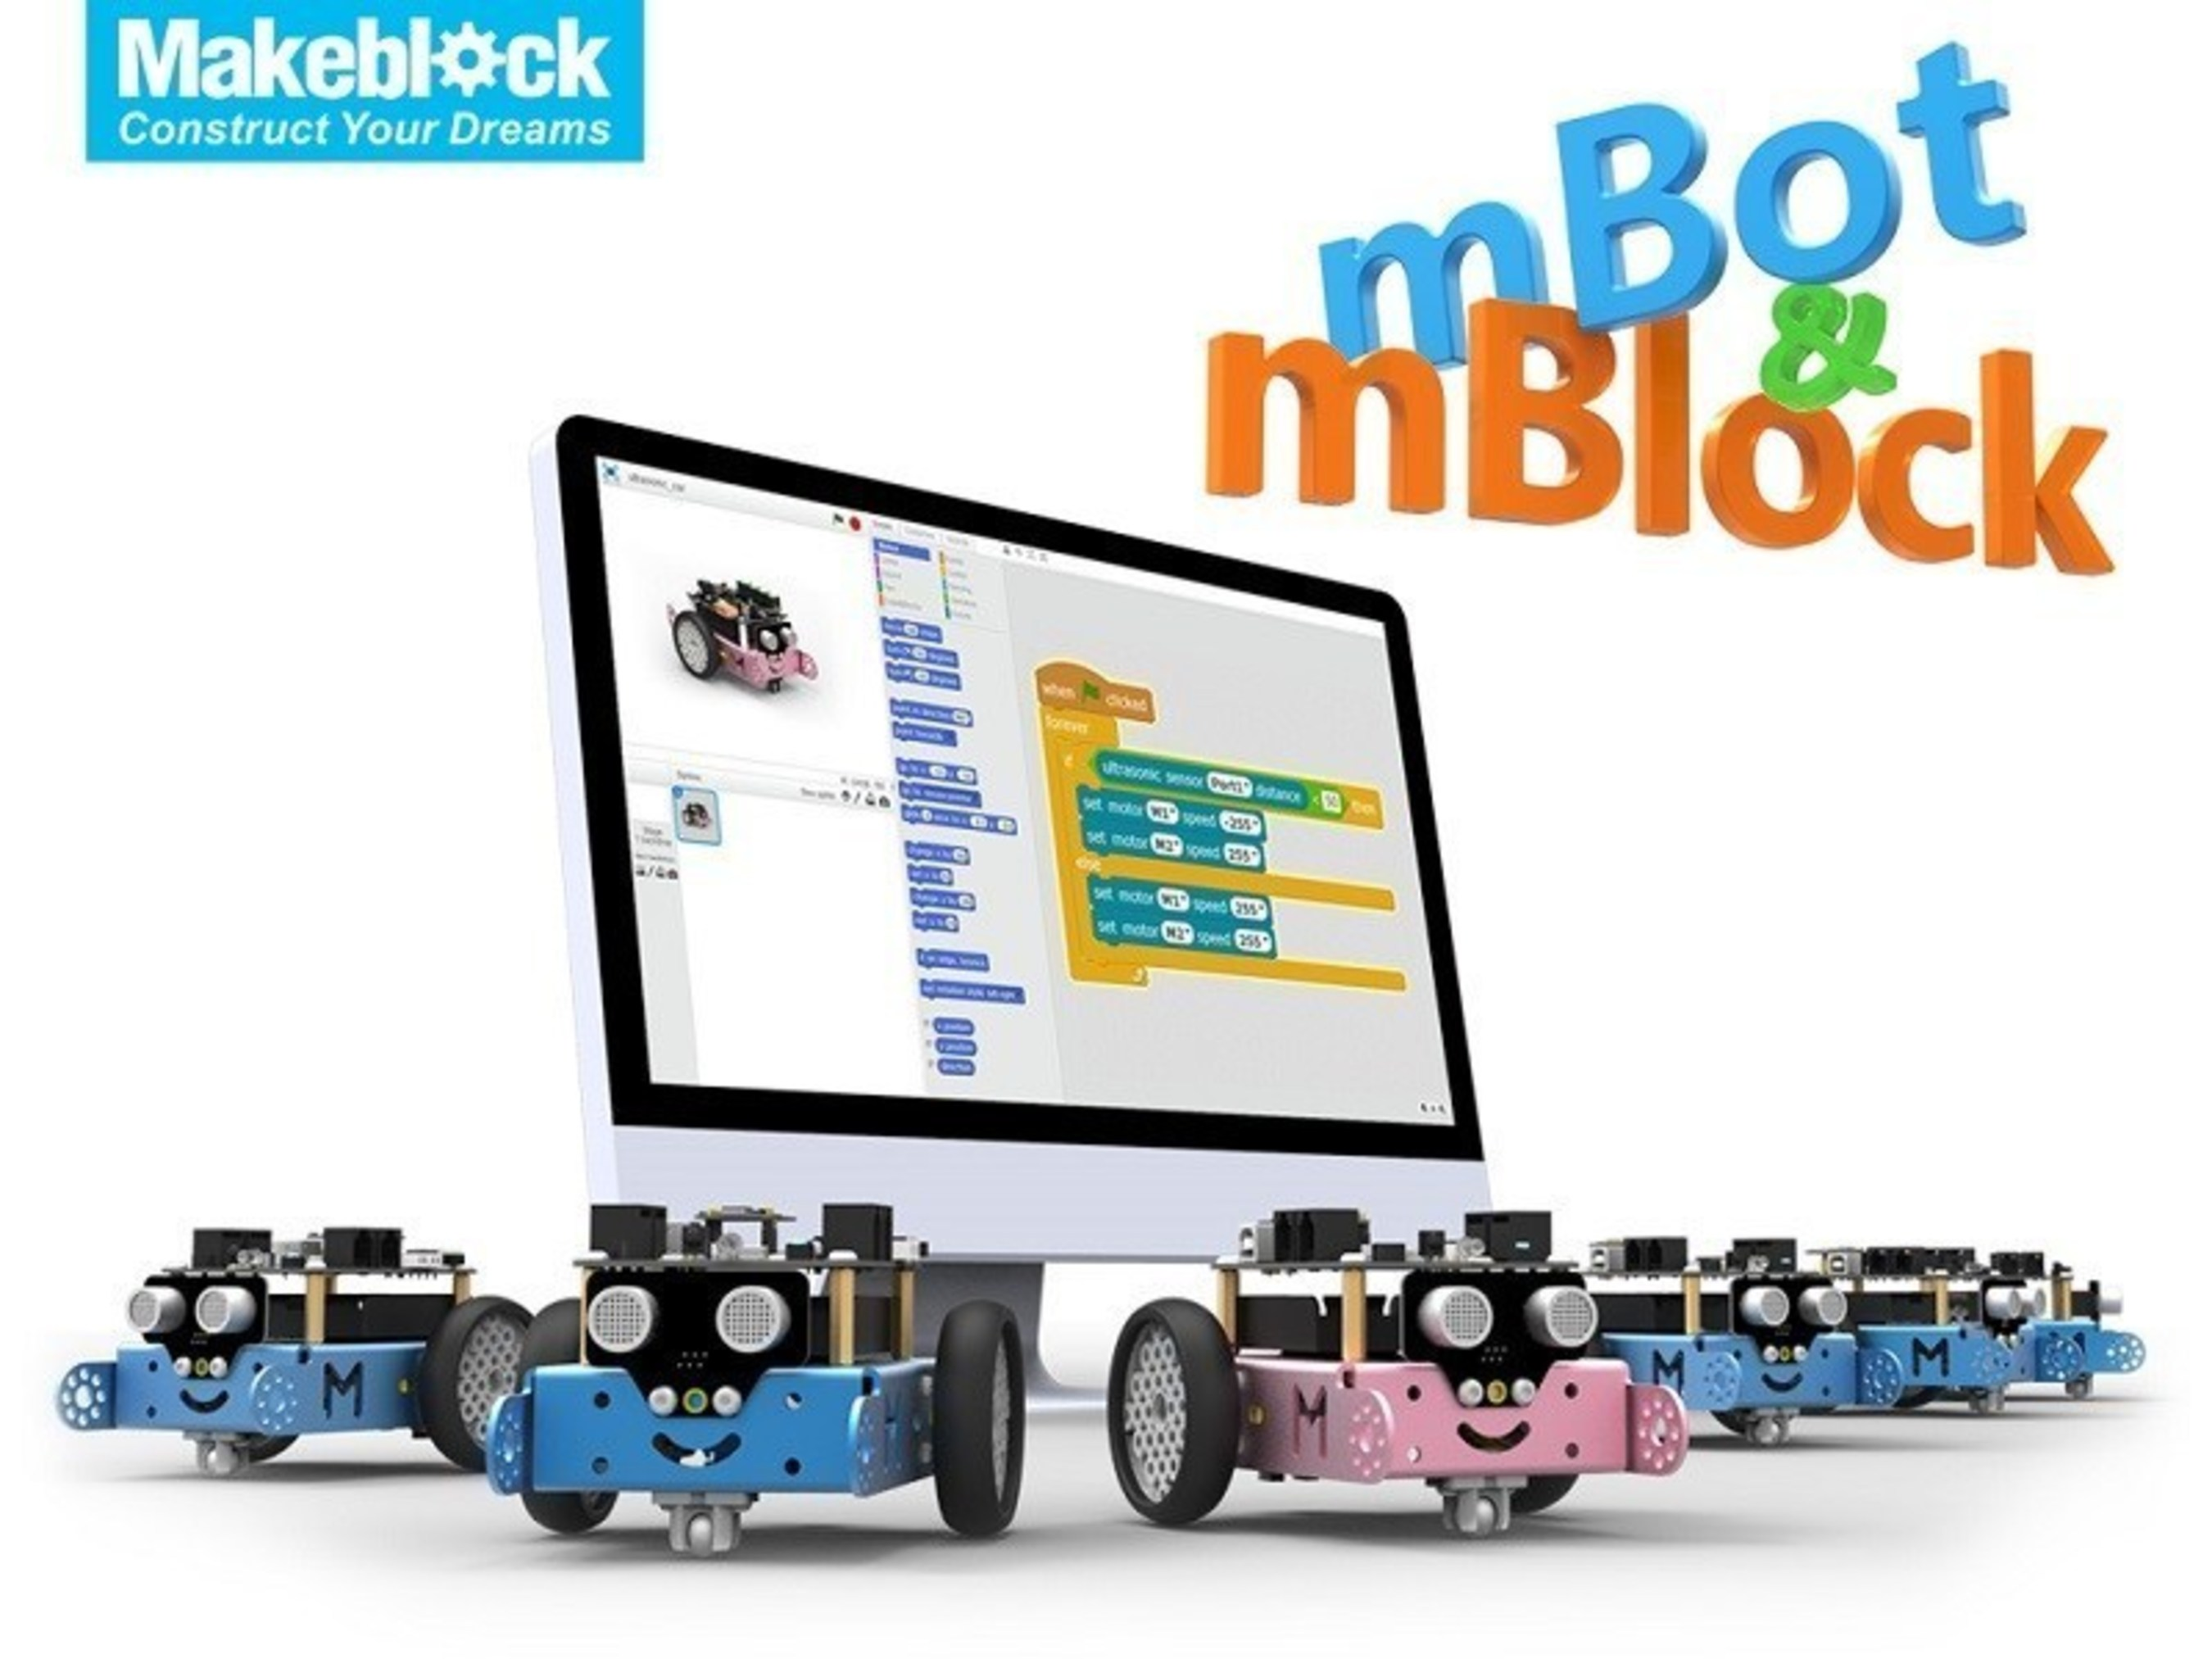 $49 to Get a STEM Robot for Kids from Makeblock, 10 Days Left!